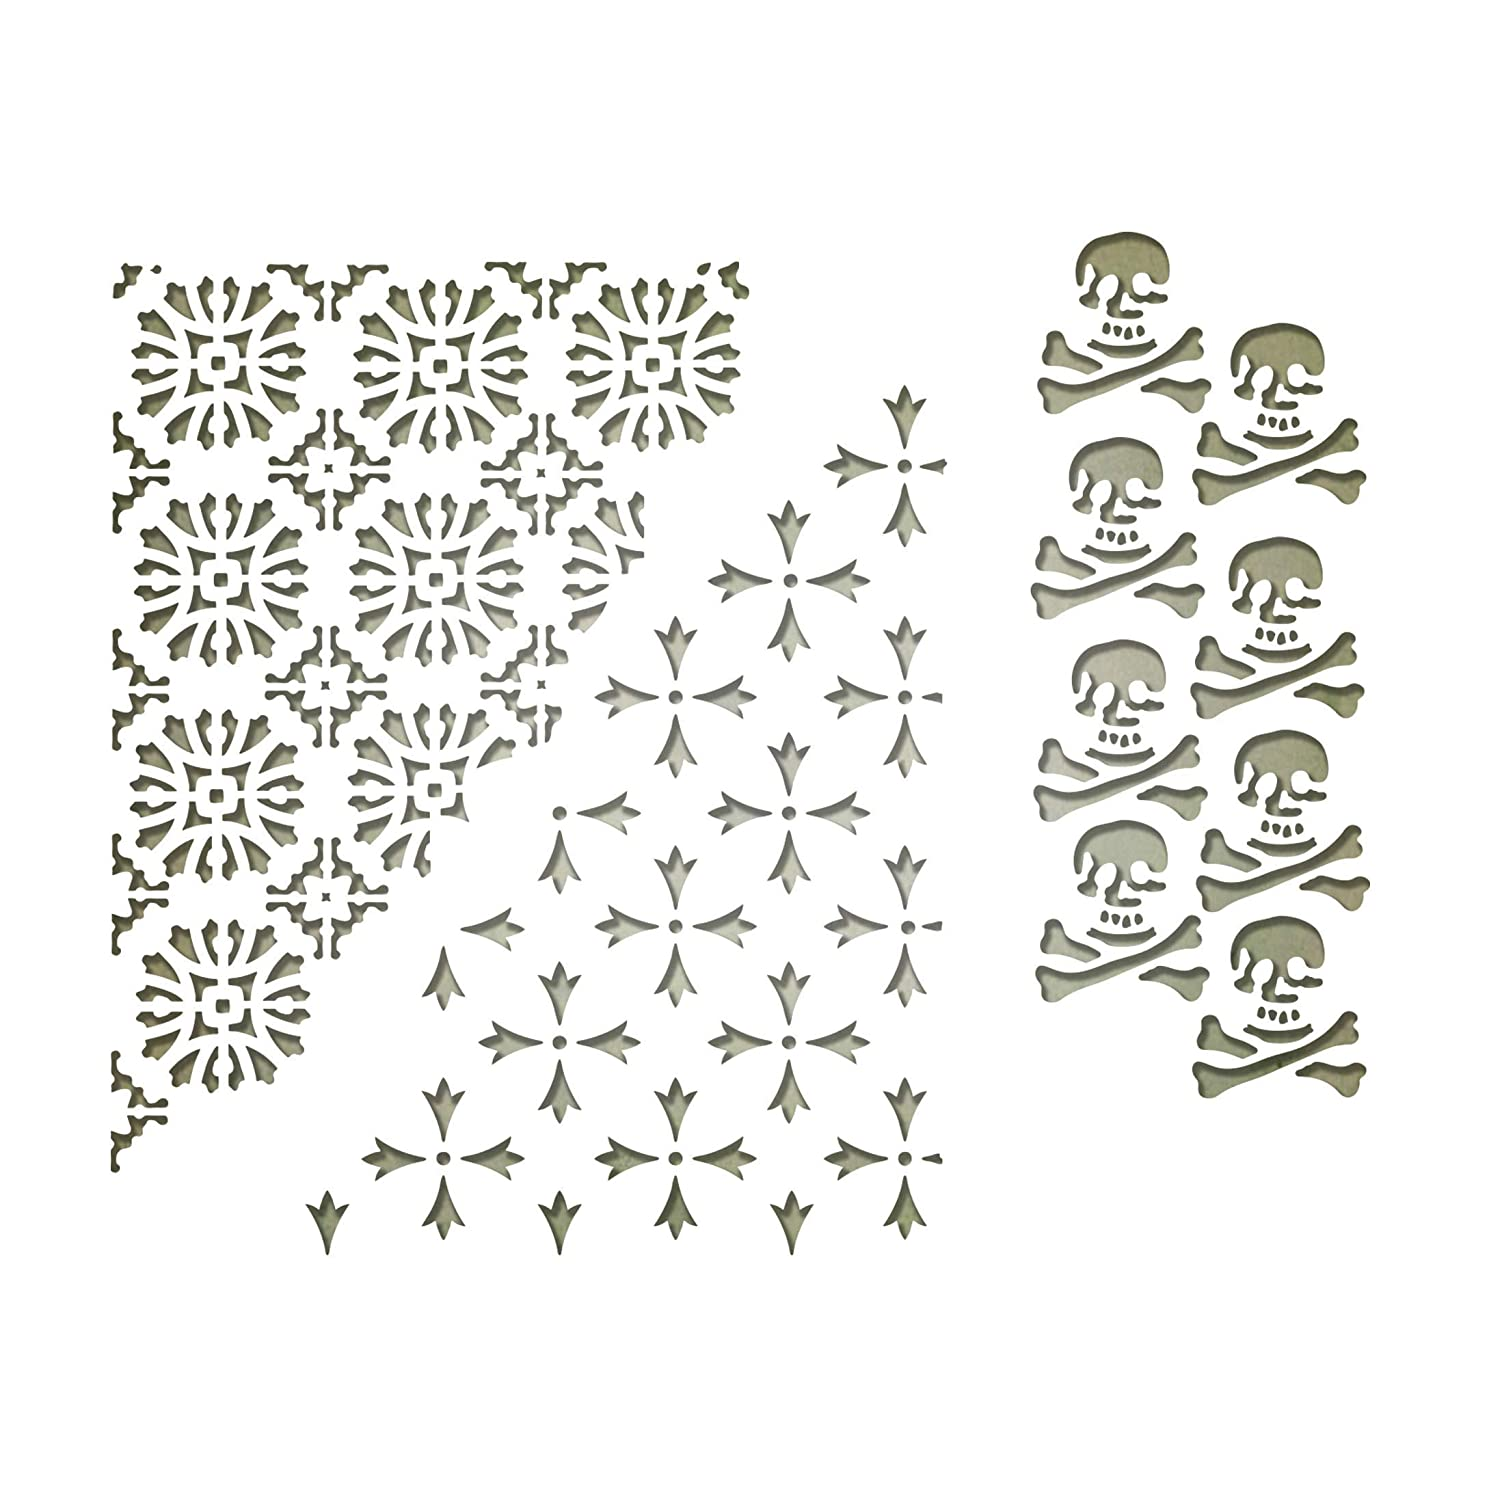 Sizzix 663089 Thinlits Dies Mixed Media Halloween #2 by Tim Holtz, 3-Pack, us:one Size, Multicolor